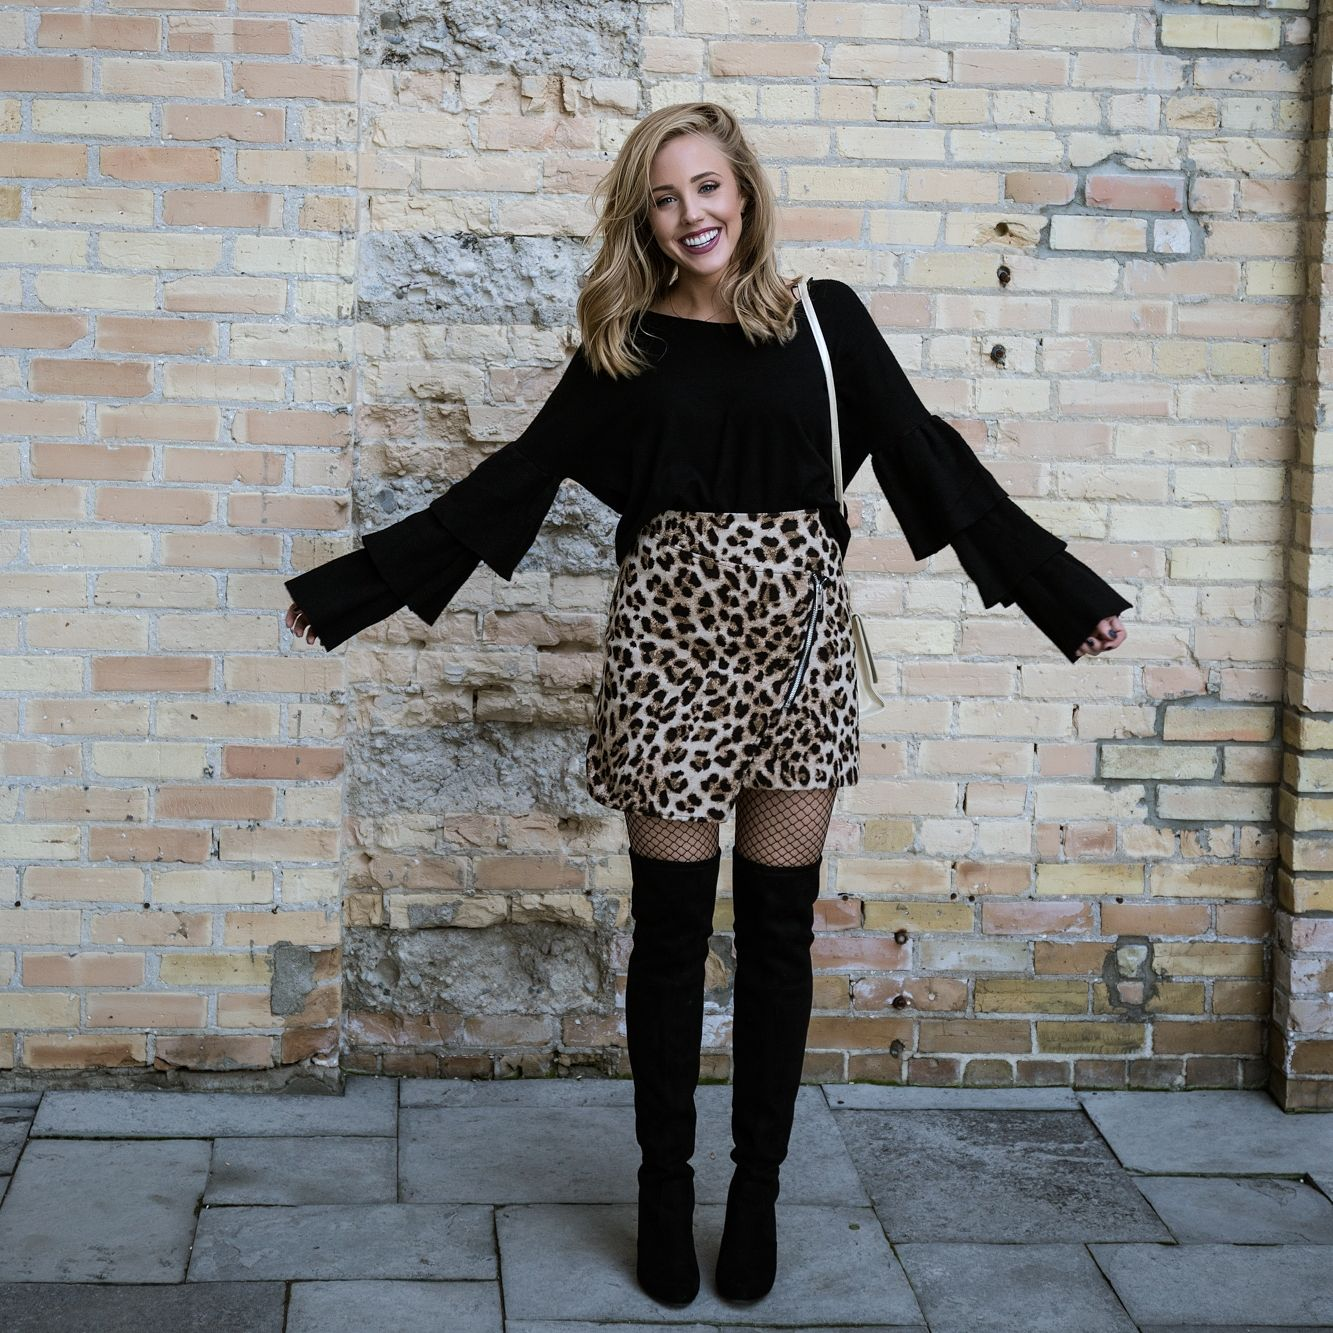 80deefc3a018 Black Ruffle Sweater, Leopard Skirt, Black Over-The-Knee boots, Fishnets  #bloggerstyle #style #lifestyle #fashion #leopard #bloggerlife  #personallypaige ...